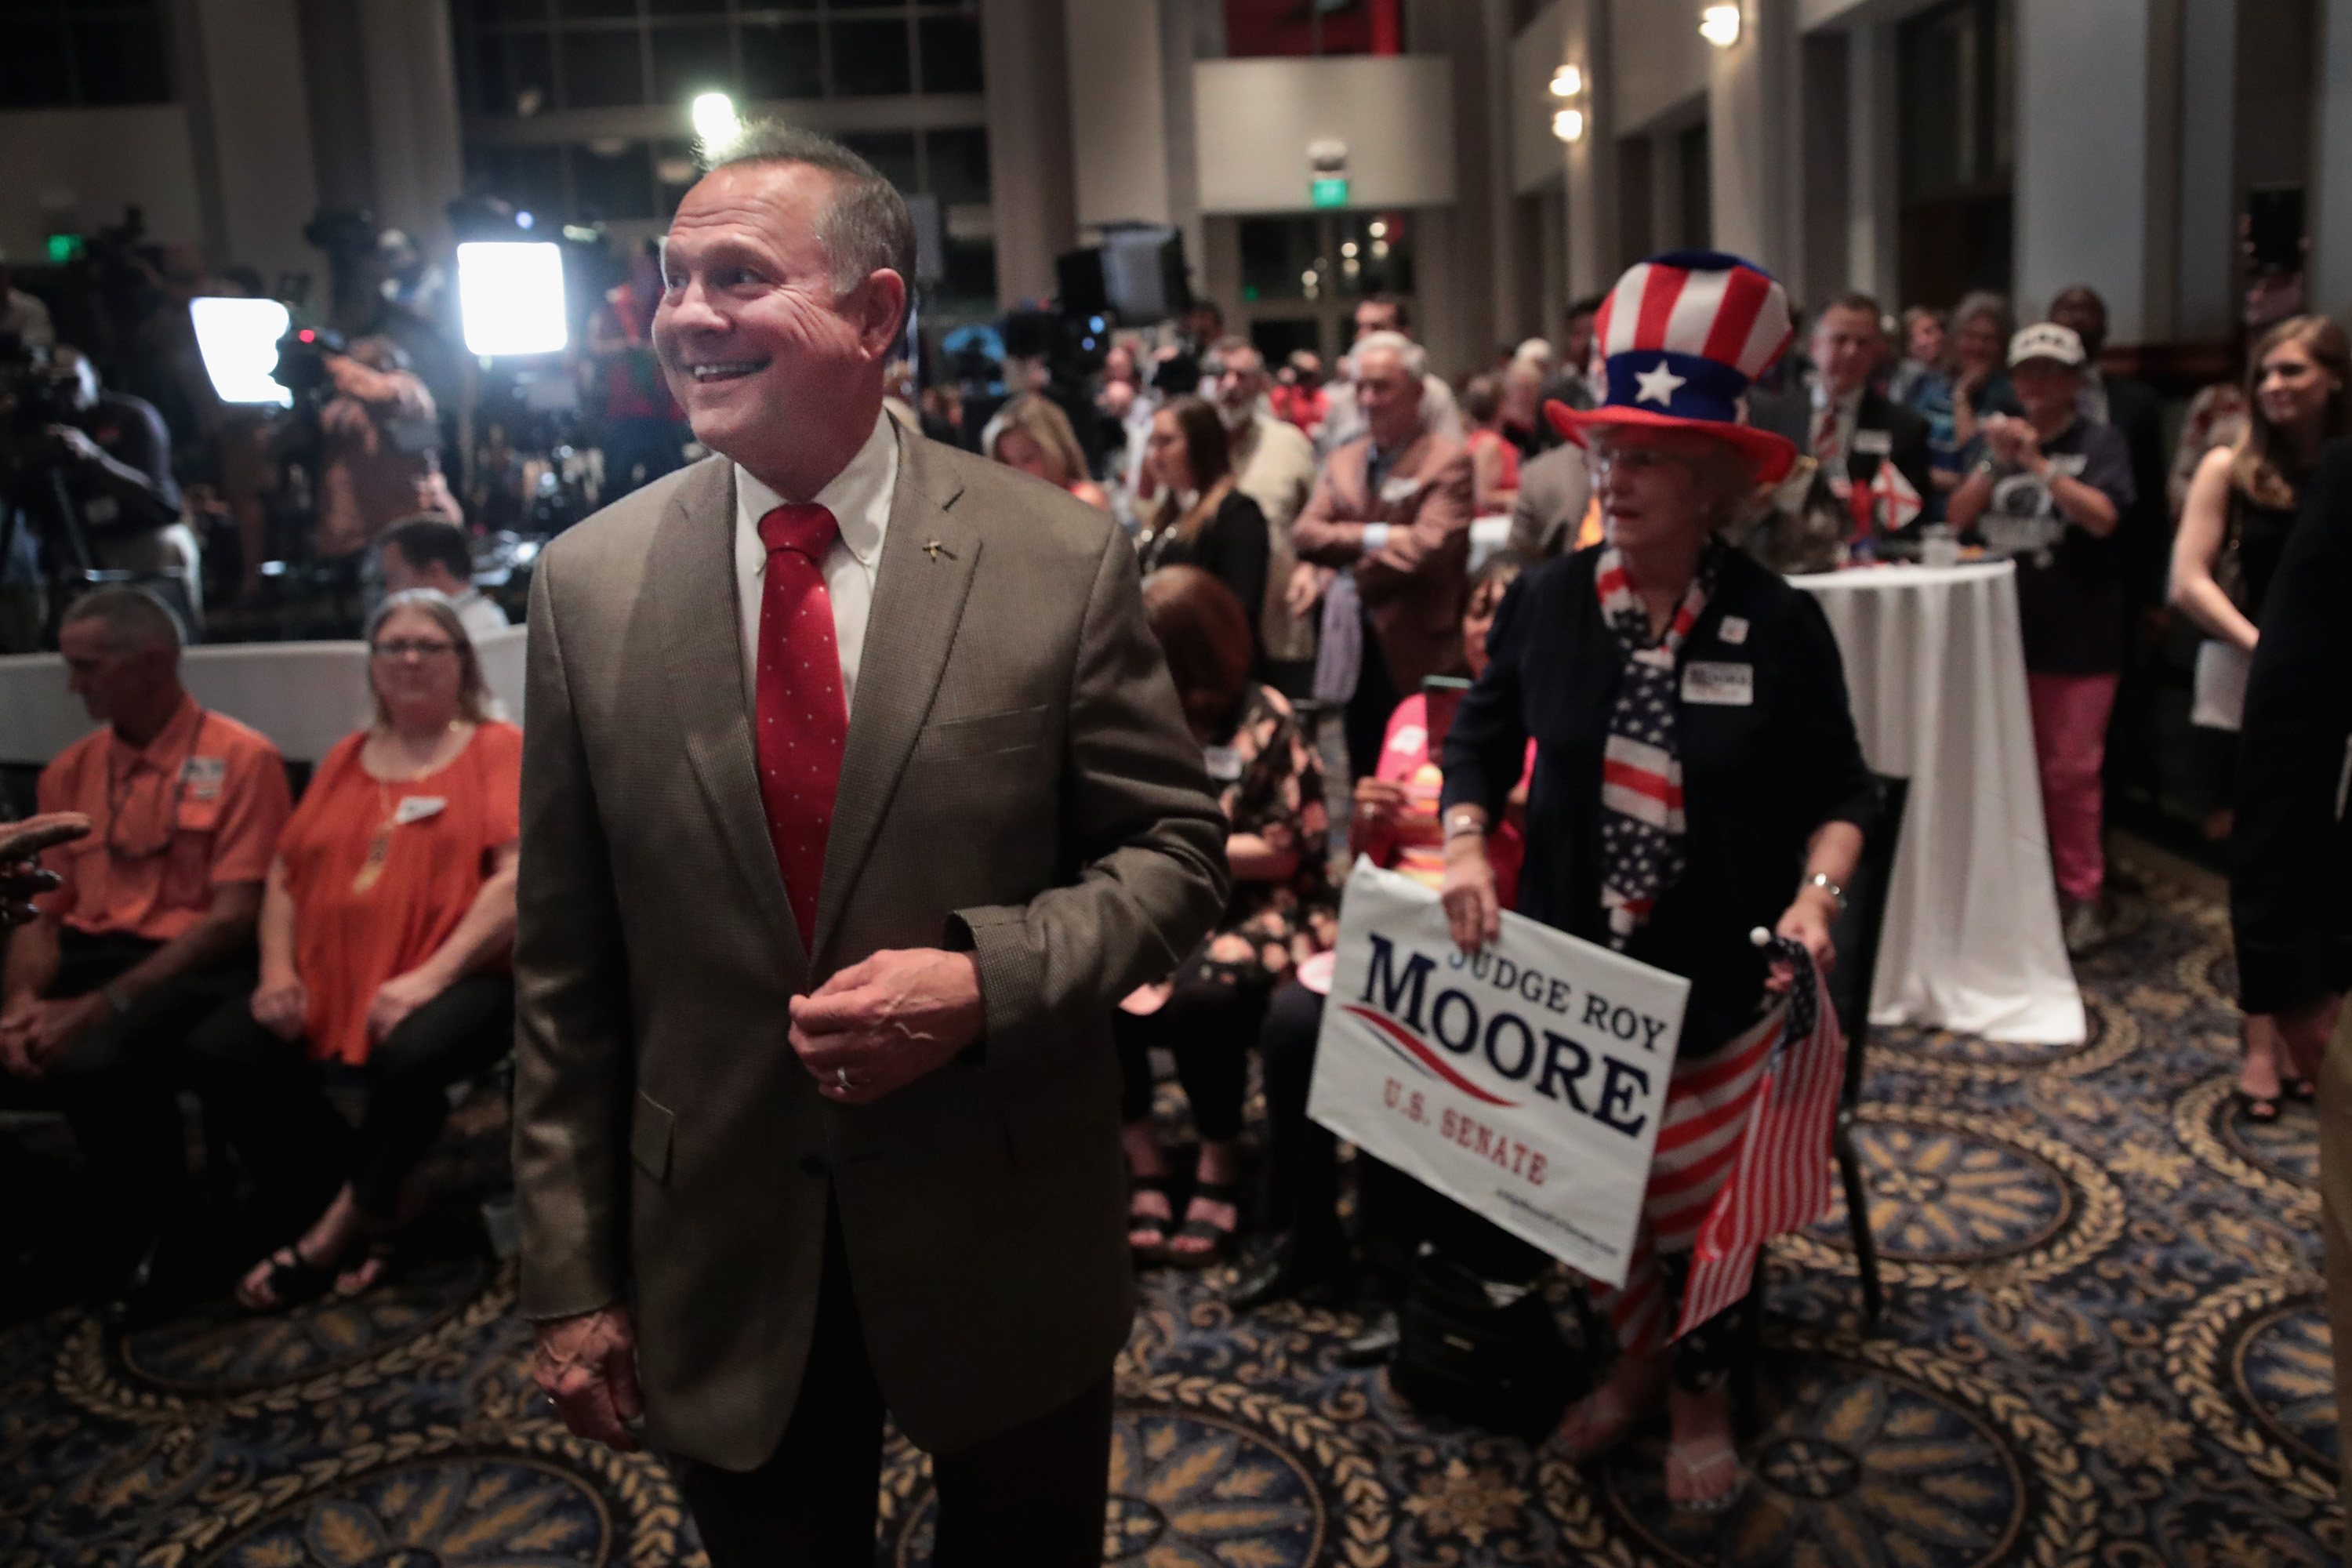 Roy Moore greets guests at an election-night rally on September 26, 2017 in Montgomery, Alabama. Moore, former chief justice of the Alabama supreme court, defeated Luther Strange, who was backed by President Trump, for the Senate seat vacated by Attorney General Jeff Sessions.